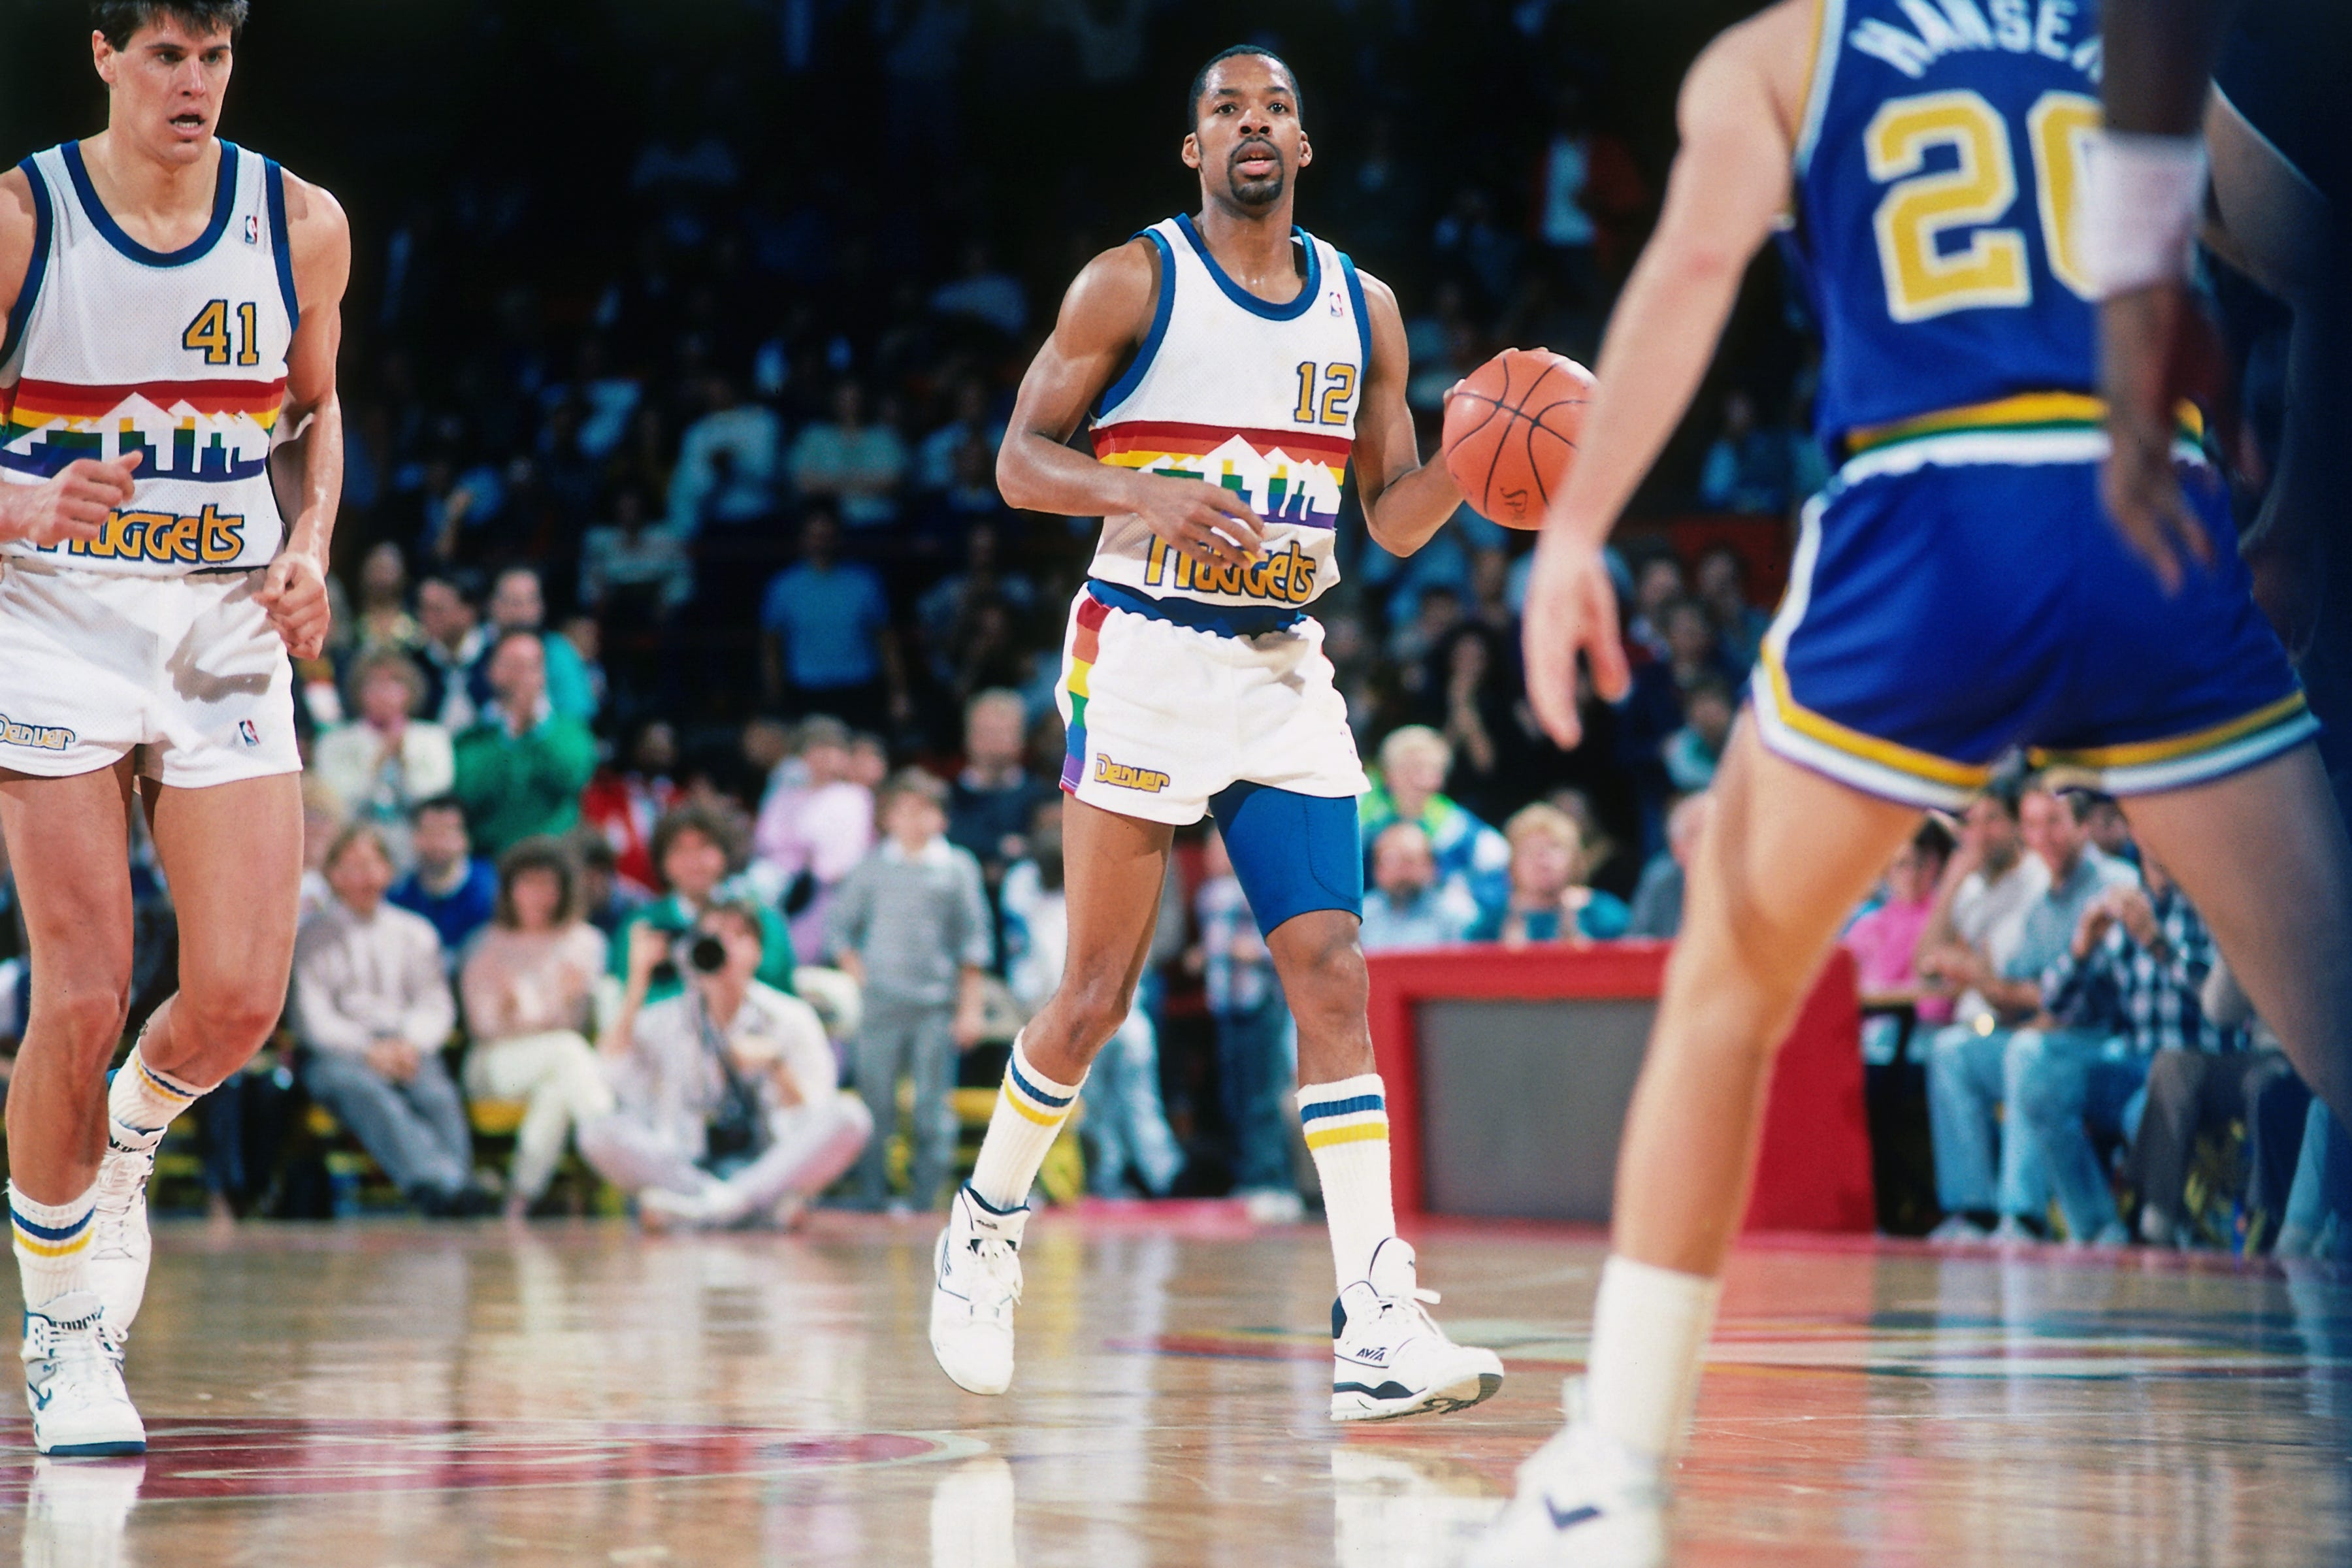 Nuggets bringing back awesome old uniforms - NBA twitter top10 news ... 4d01ad85d